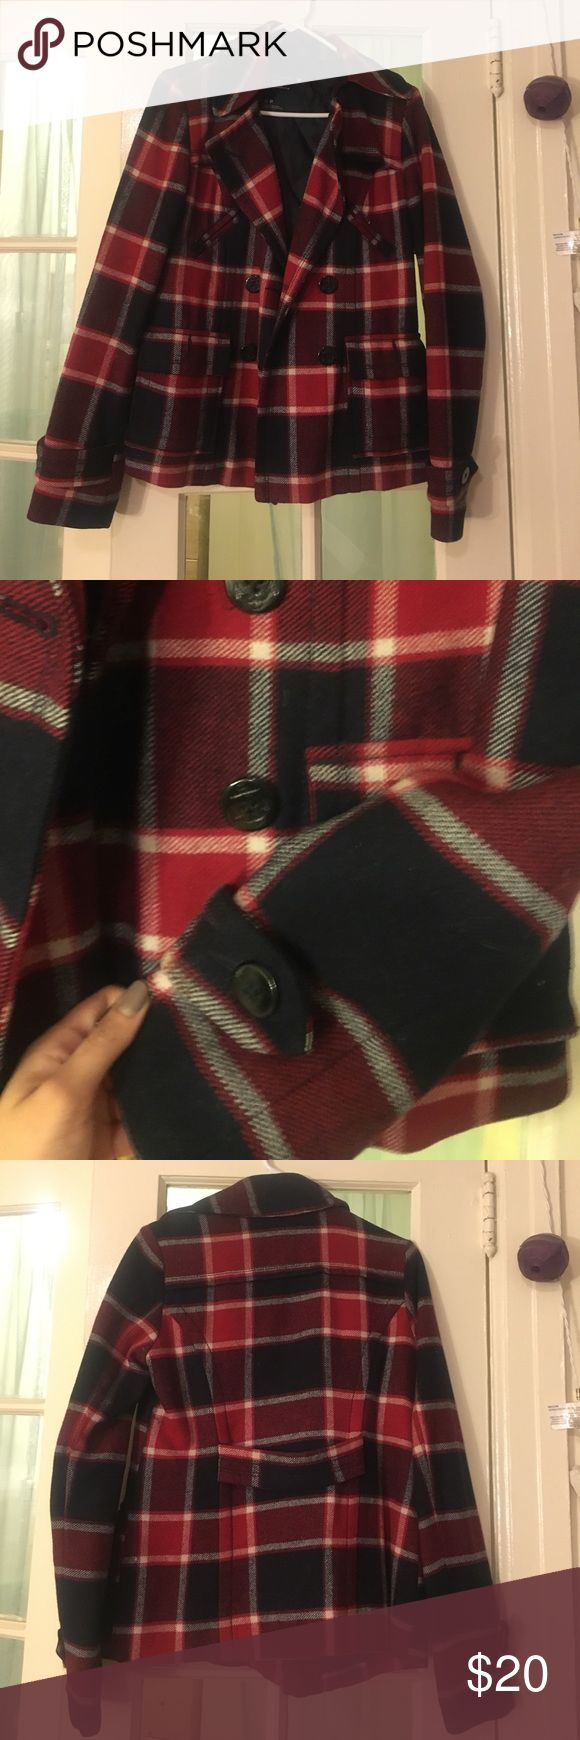 Plaid Peacoat from American Eagle Outfitters Size small plaid peacoat from American Eagle Outfitters. Previously worn, in good condition. American Eagle Outfitters Jackets & Coats Pea Coats